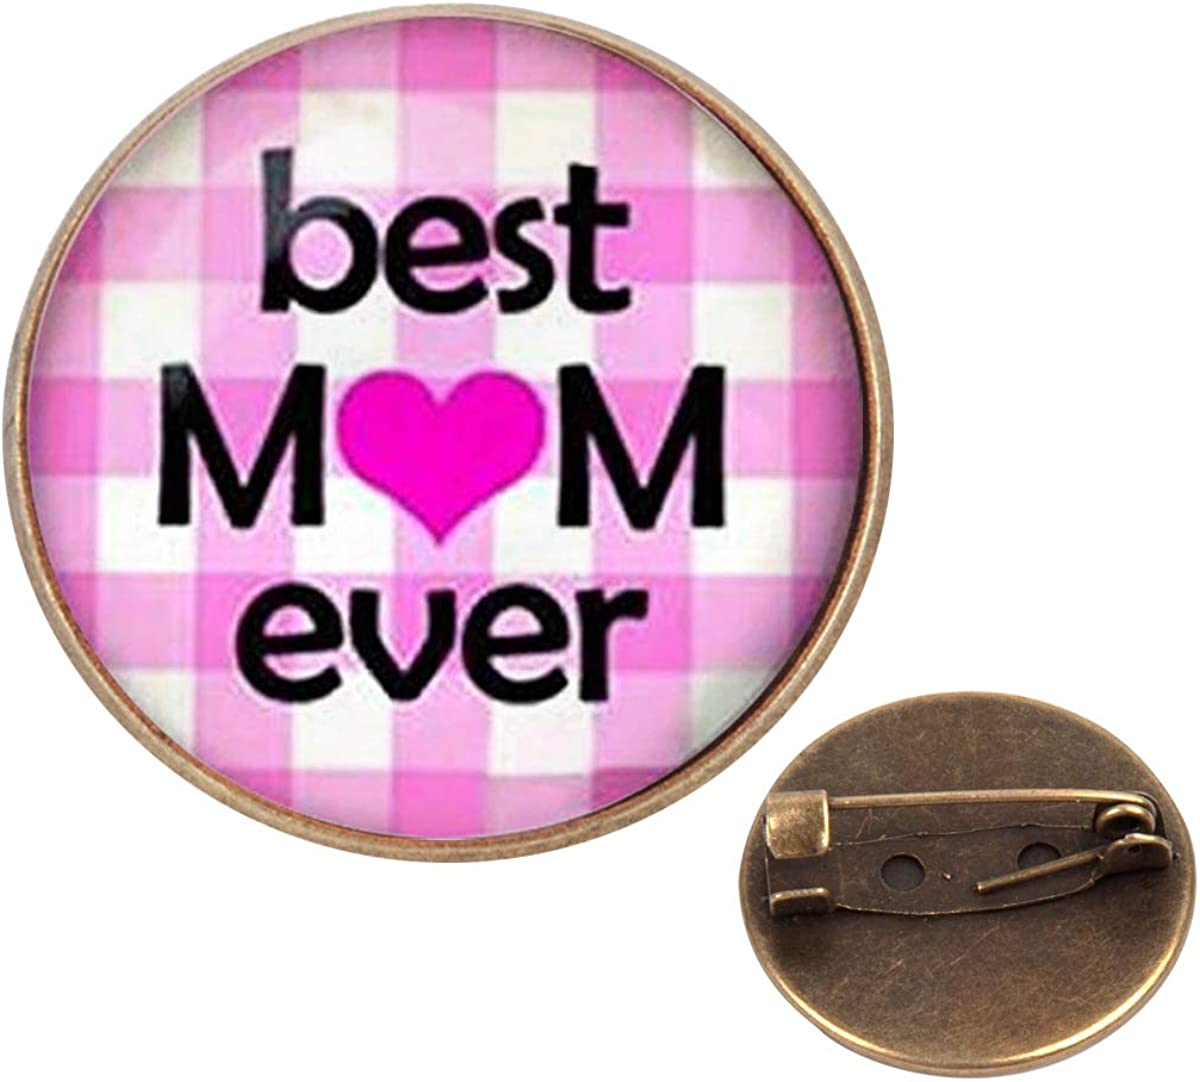 Pinback Buttons Badges Pins Best Mom Ever Mothers Day Love Mom Lapel Pin Brooch Clip Trendy Accessory Jacket T-Shirt Bag Hat Shoe